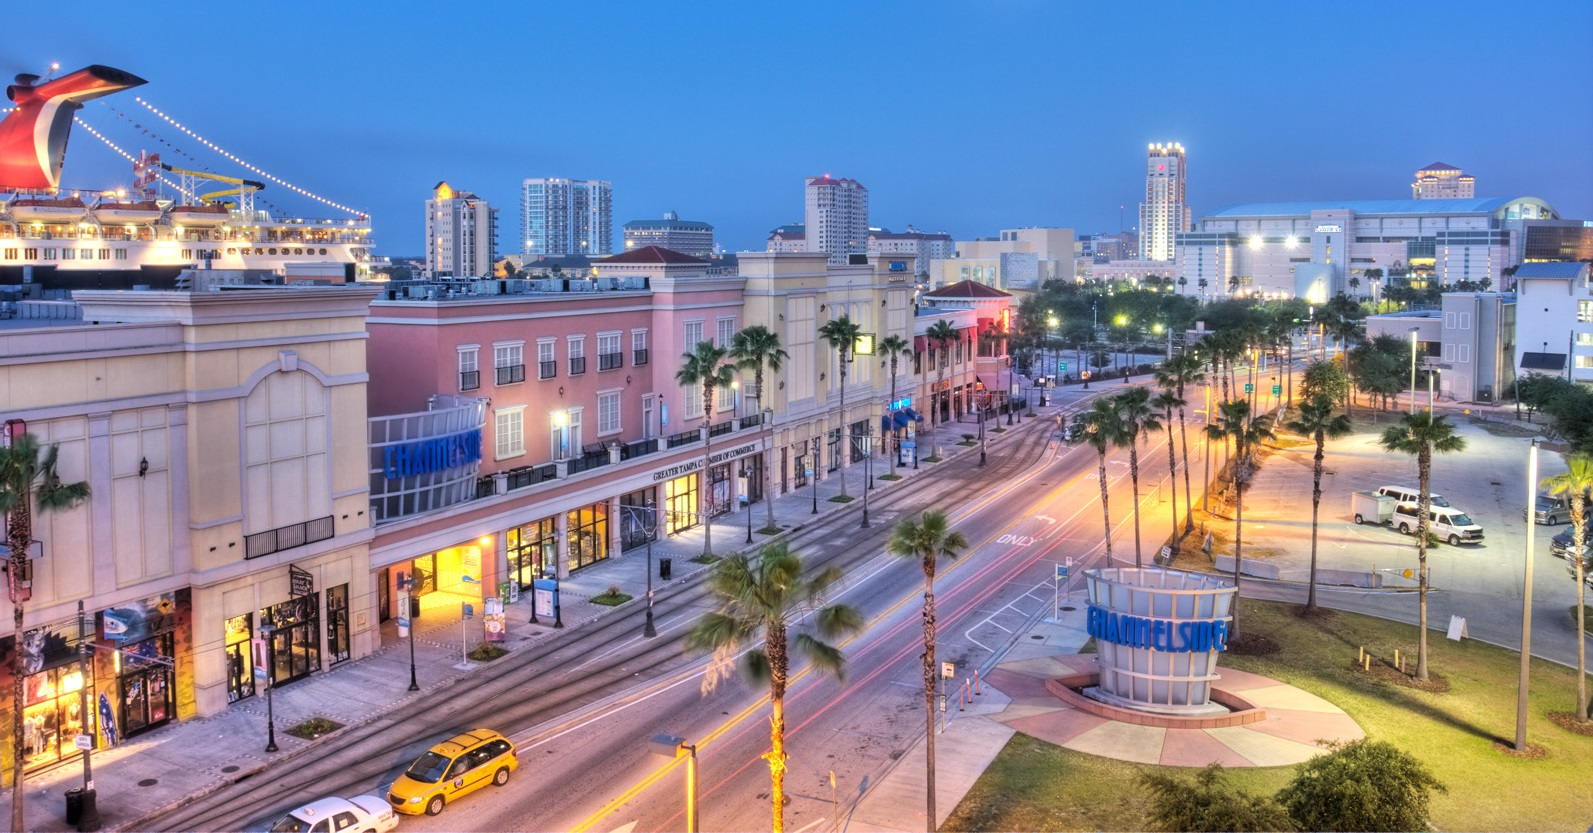 ChannelsideBayPlaza Tampa Shopping